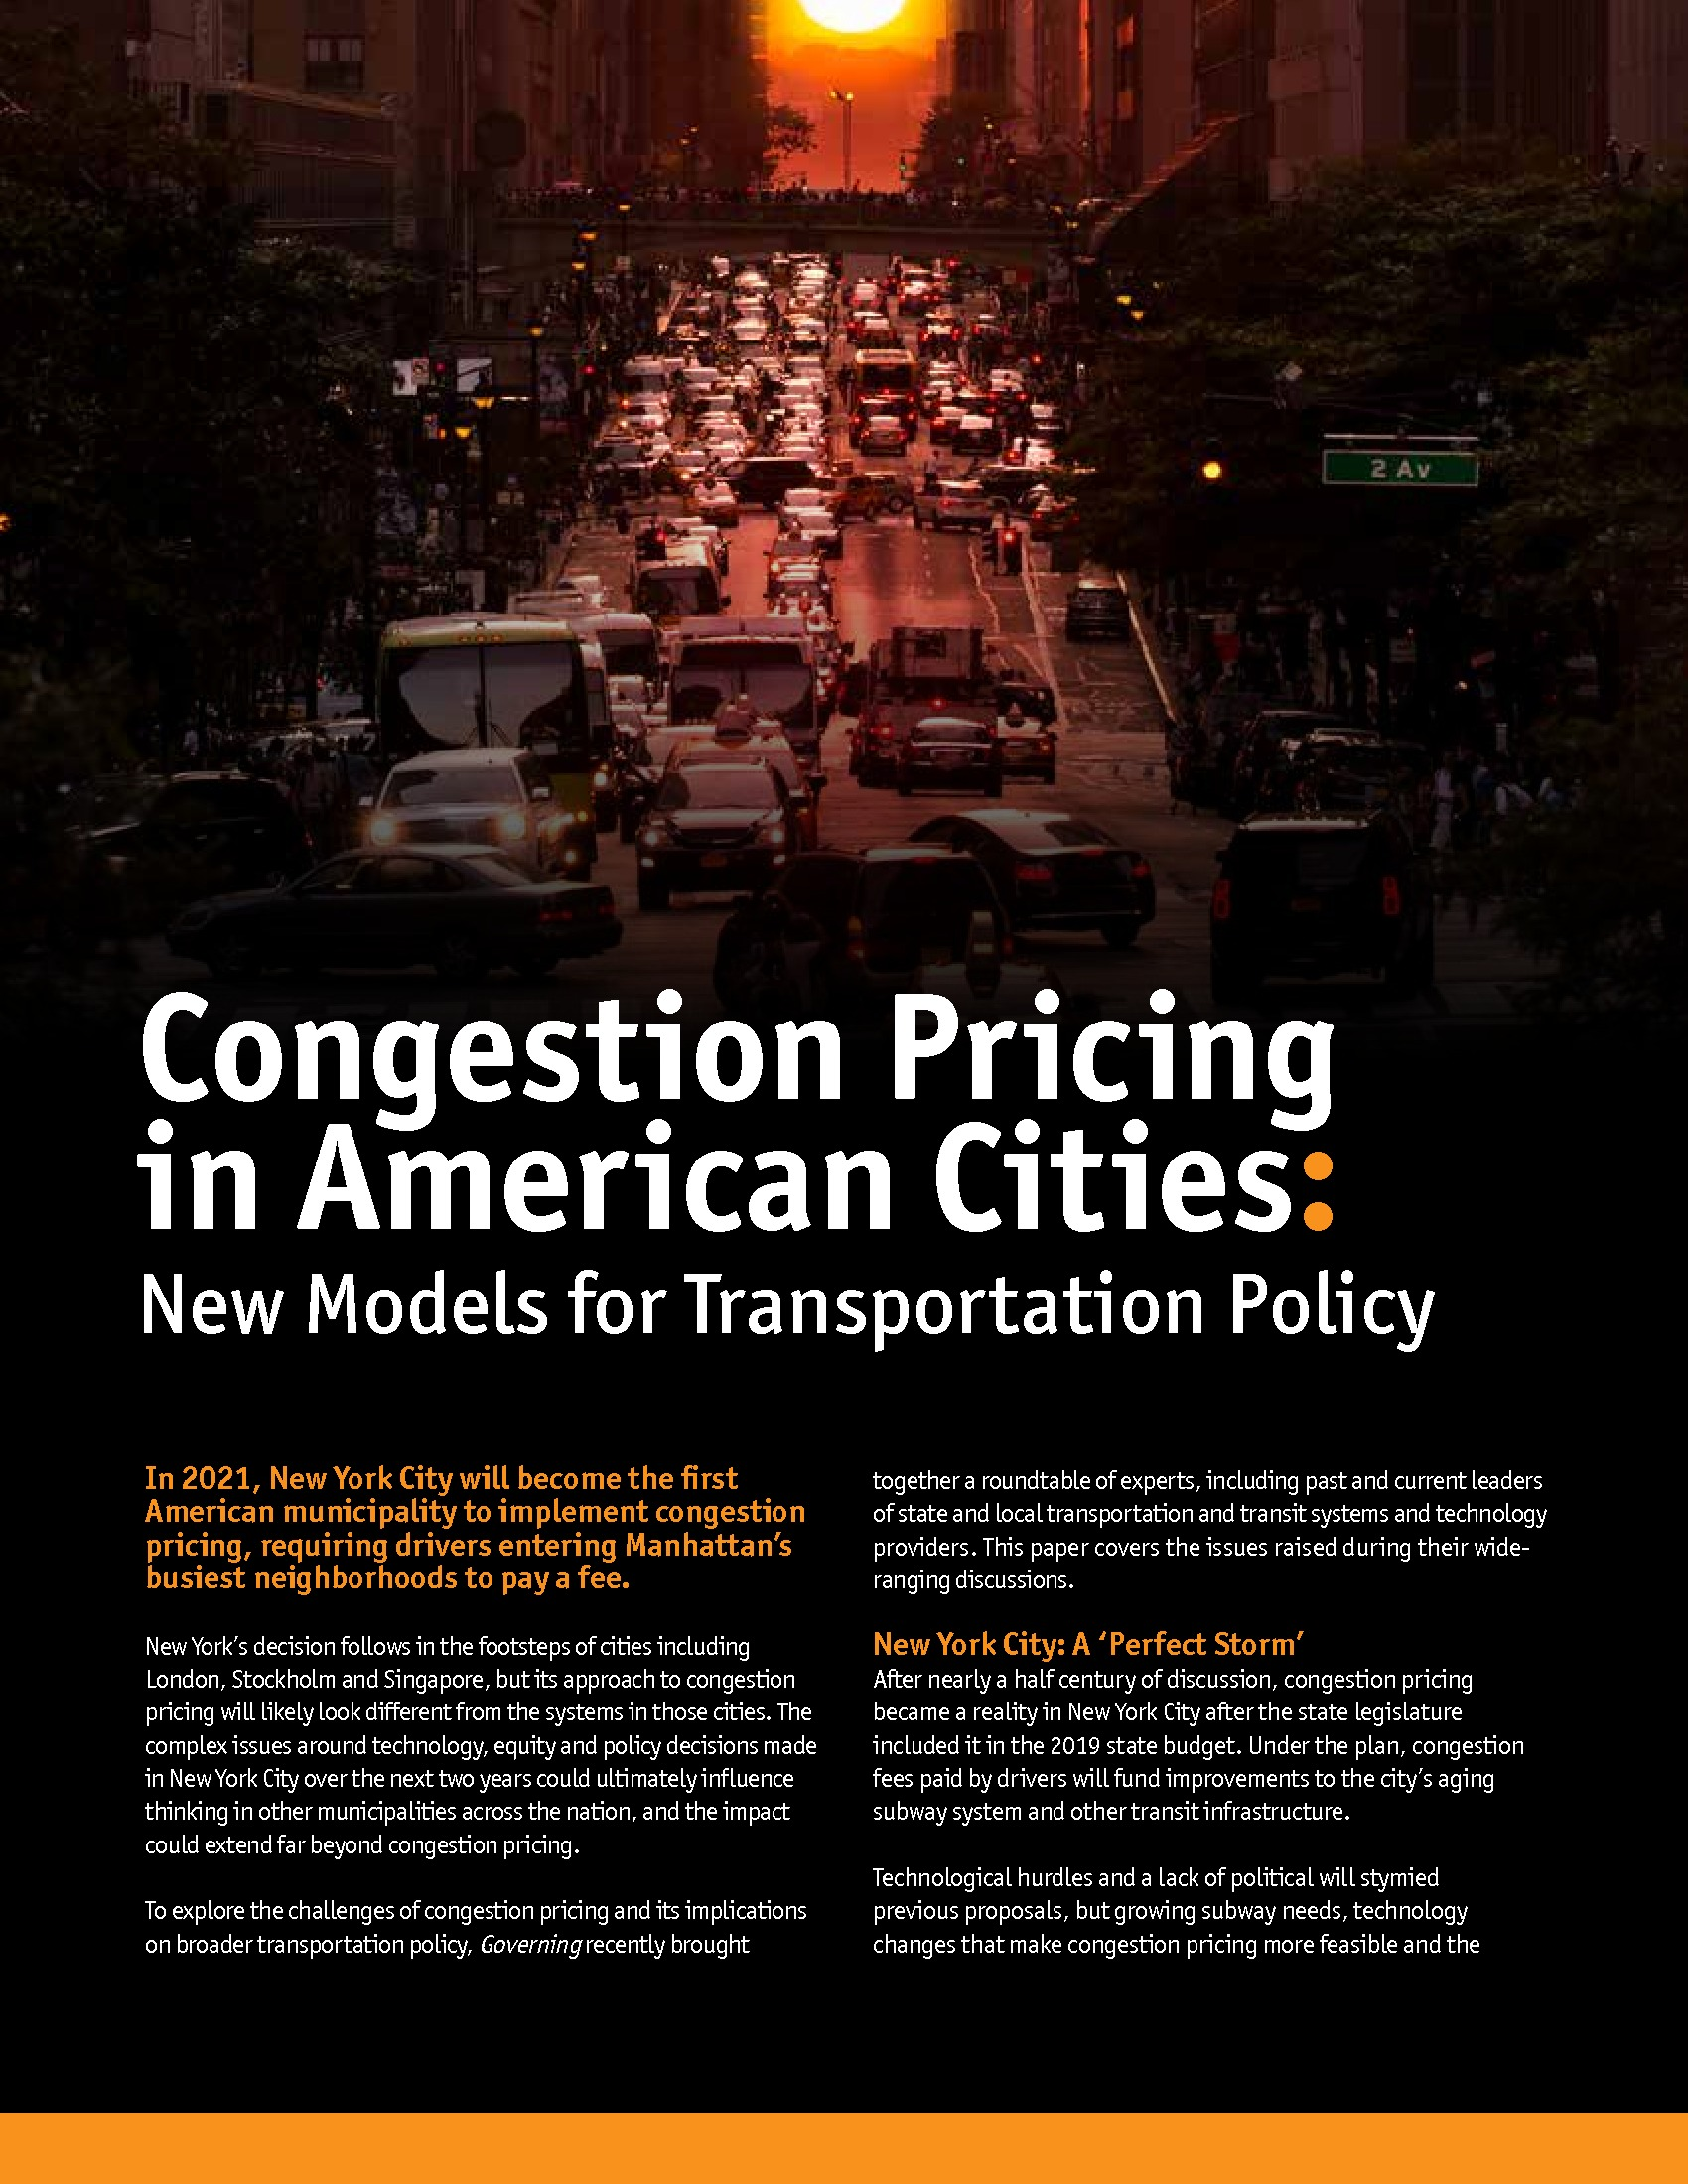 GT - Amazon - Issue Brief - 191011 - Congestion Pricing in American Cities